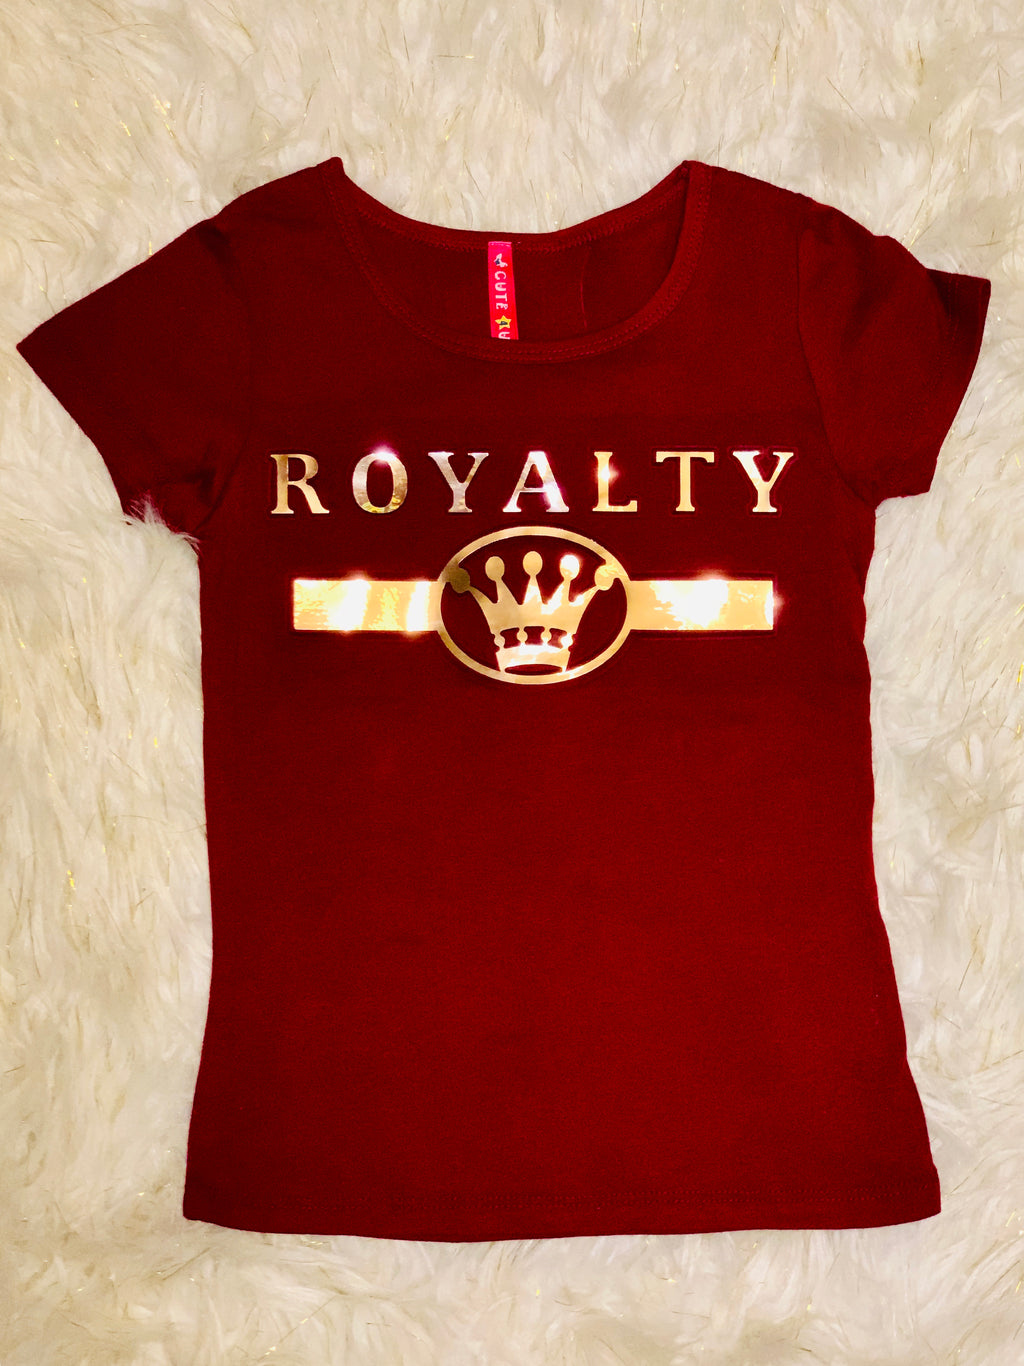 Princess Elle Toddler Tee